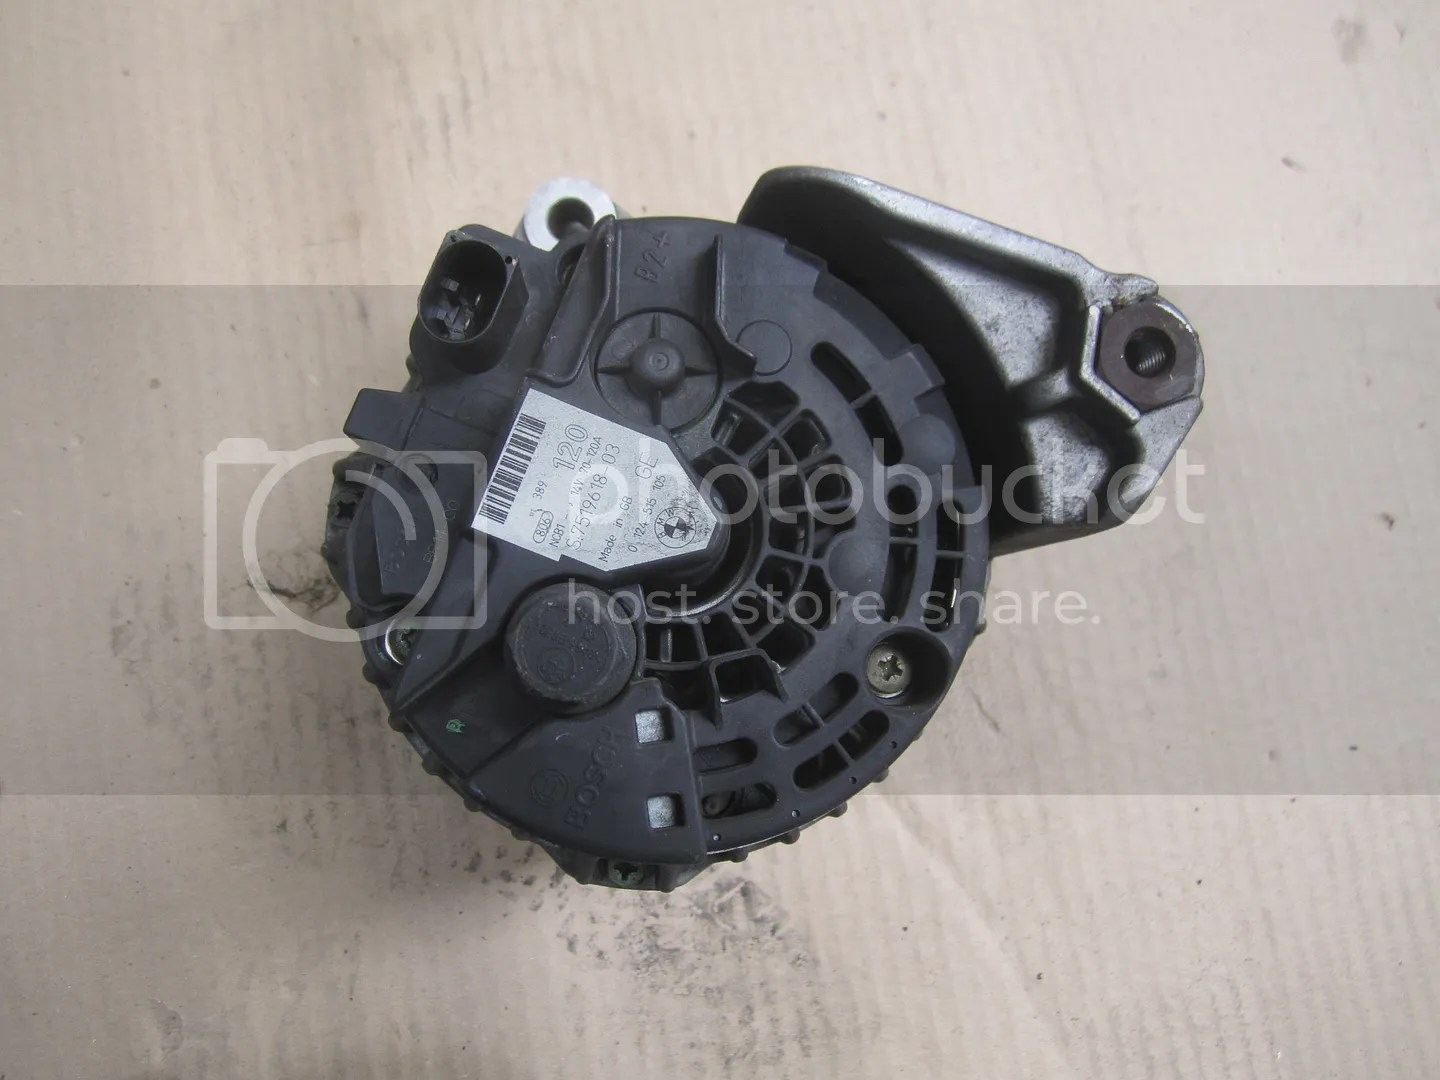 bmw 2002 alternator wiring diagram 1996 chevy 1500 745i location volkswagen passat